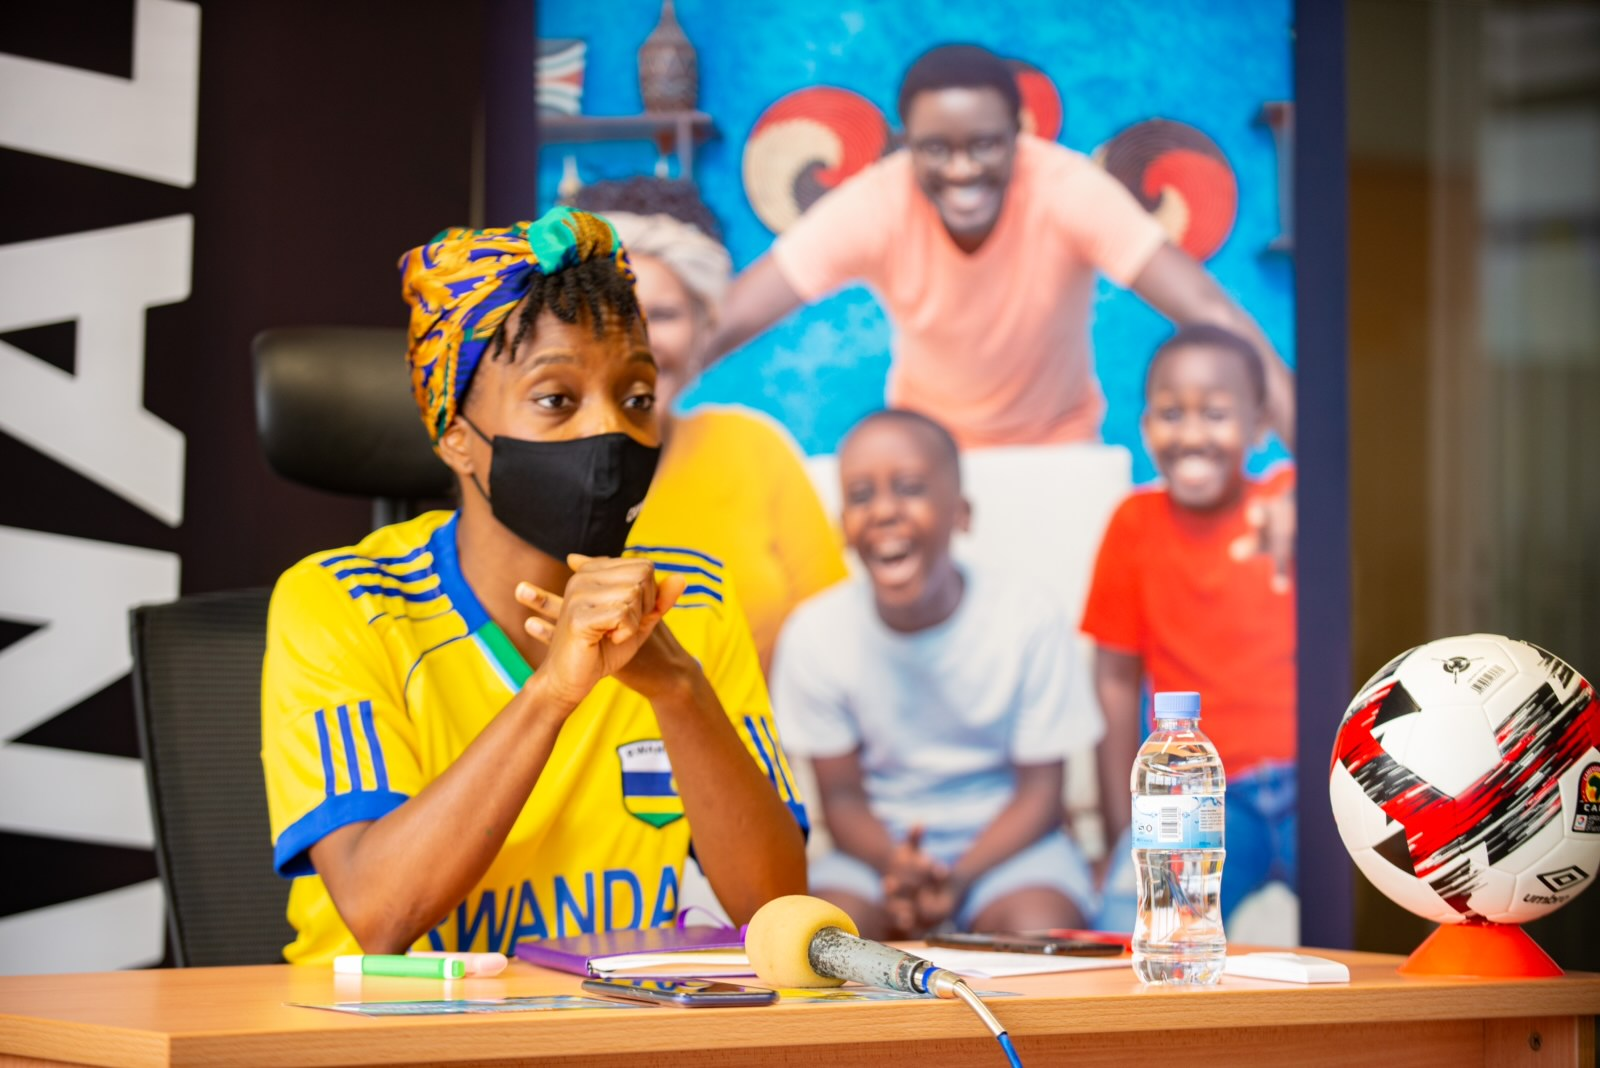 newtimes.co.rw - FEATURED: Canal Plus Rwanda to broadcast CHAN, unveils new ambitions